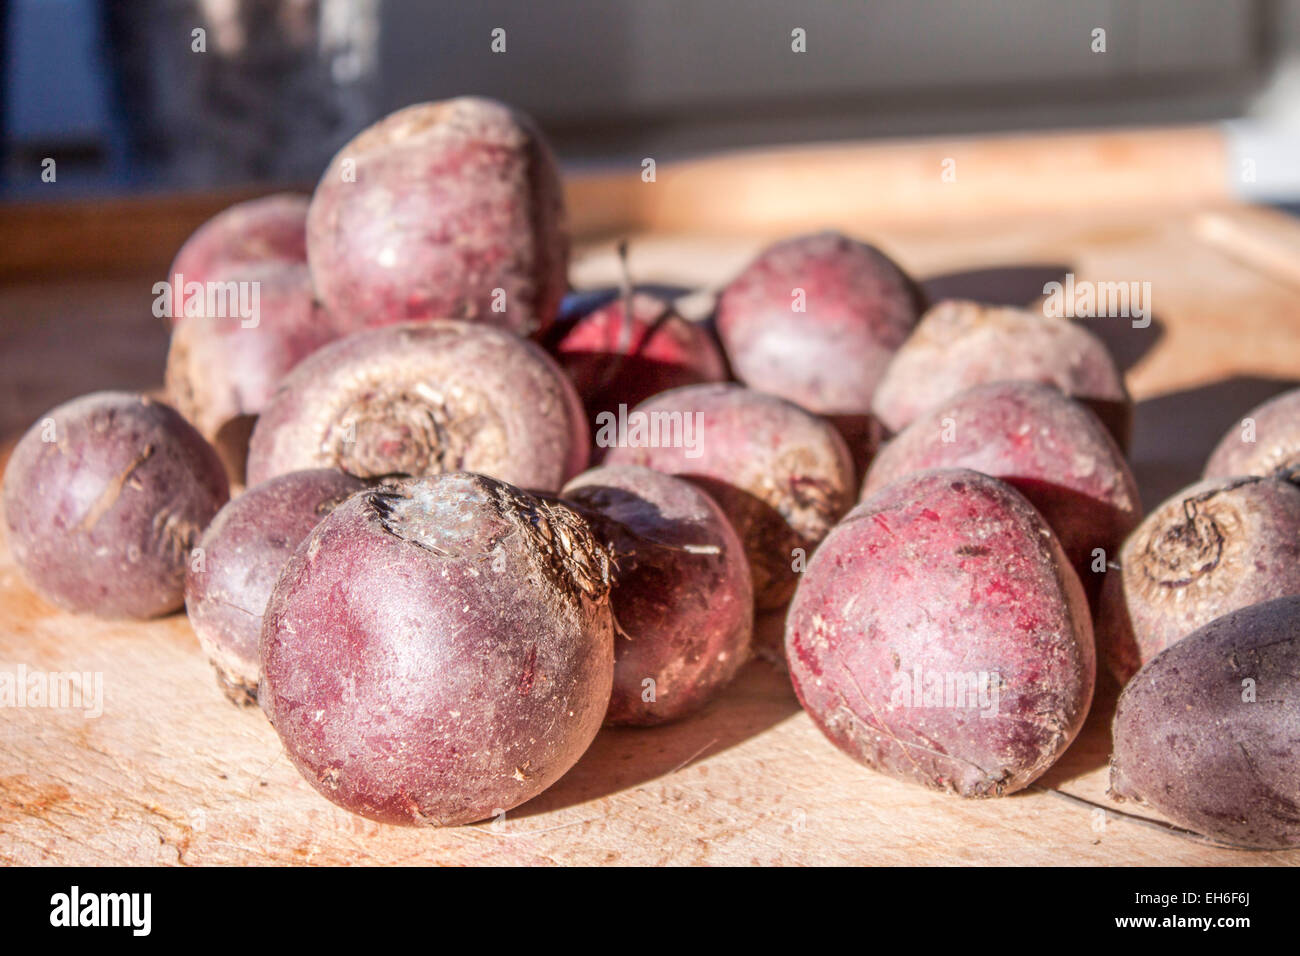 Fresh, purple beetroots, on a wooden cutting board Stock Photo